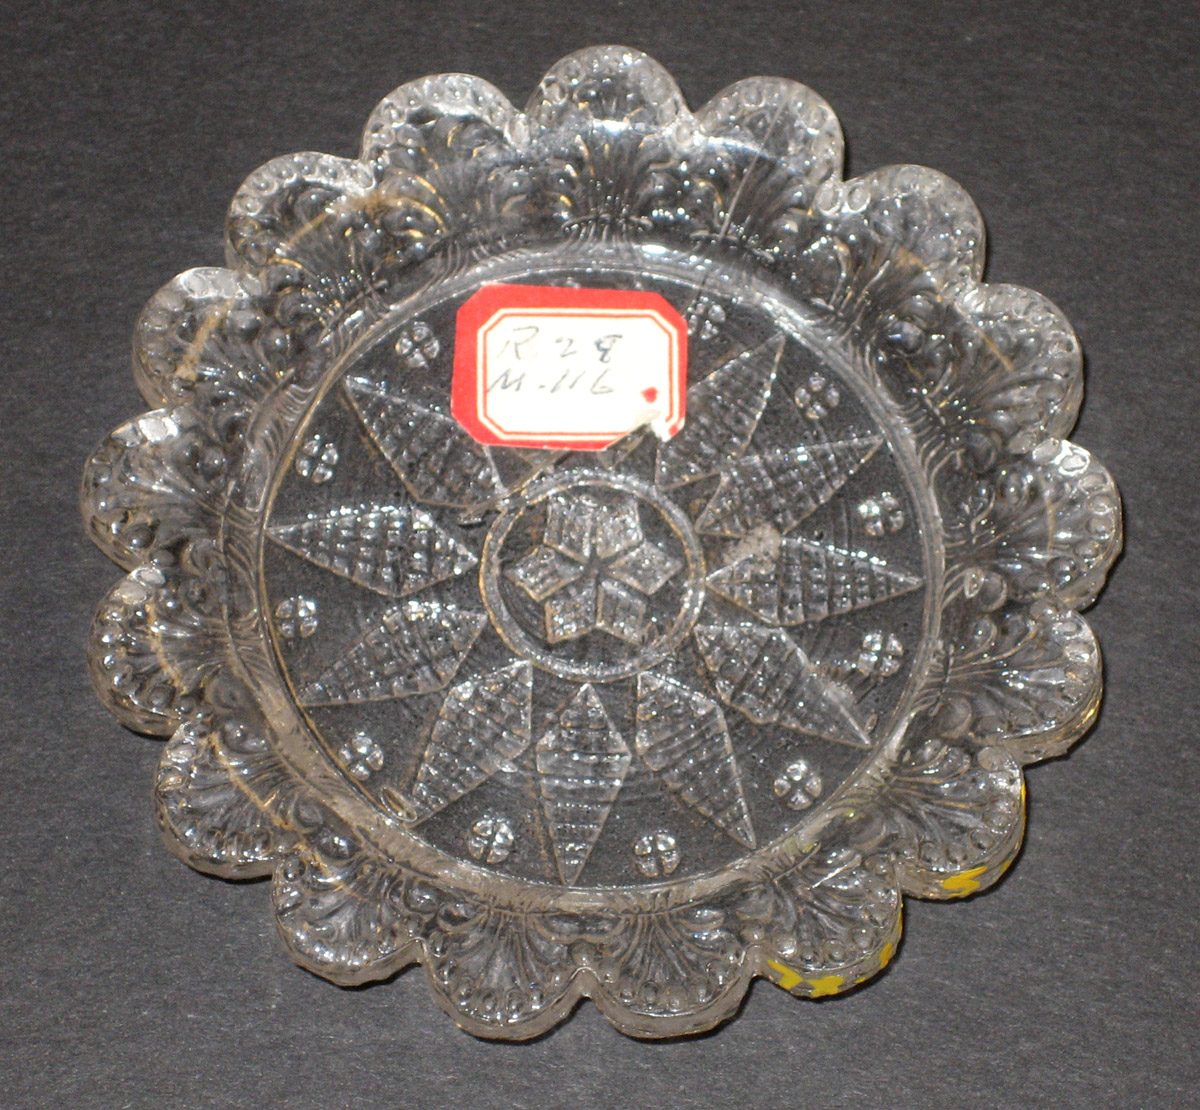 1978.0125.005 Glass cup plate